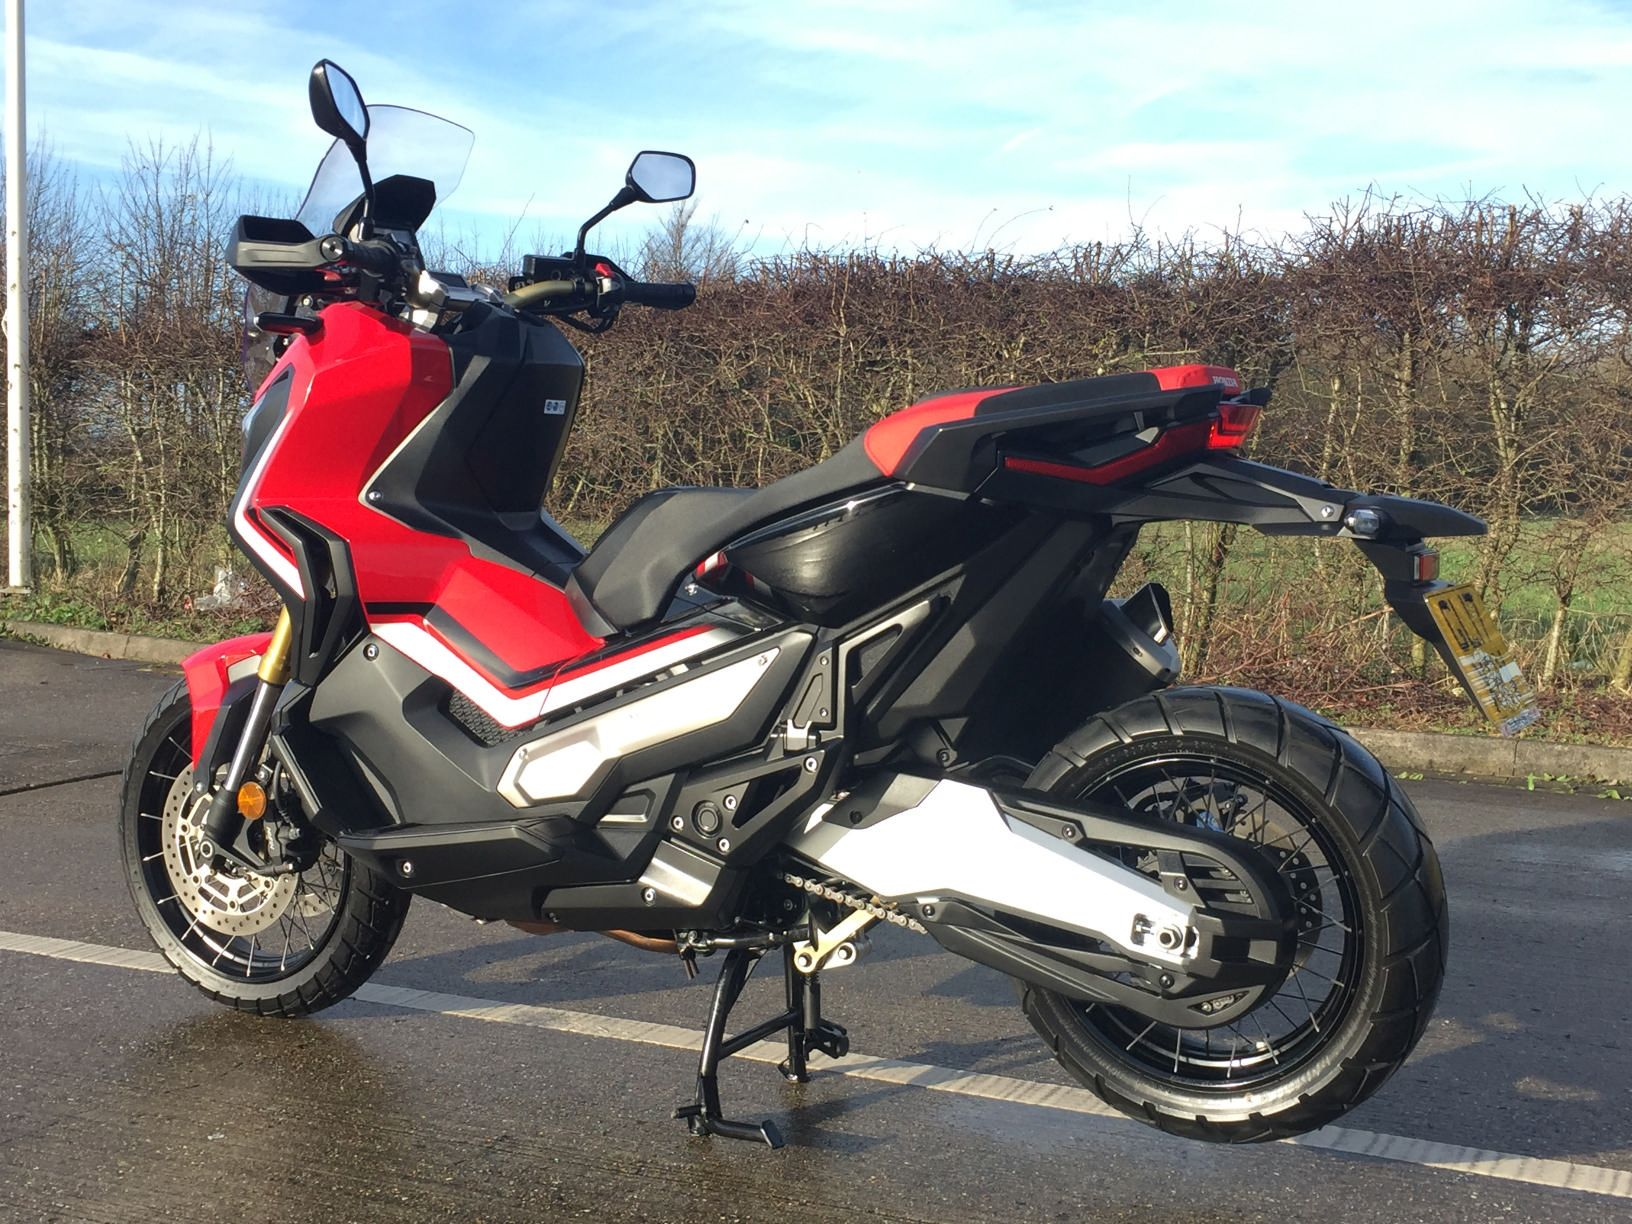 used honda adv 750 h available for sale red 2192 miles honda used motorcycles. Black Bedroom Furniture Sets. Home Design Ideas